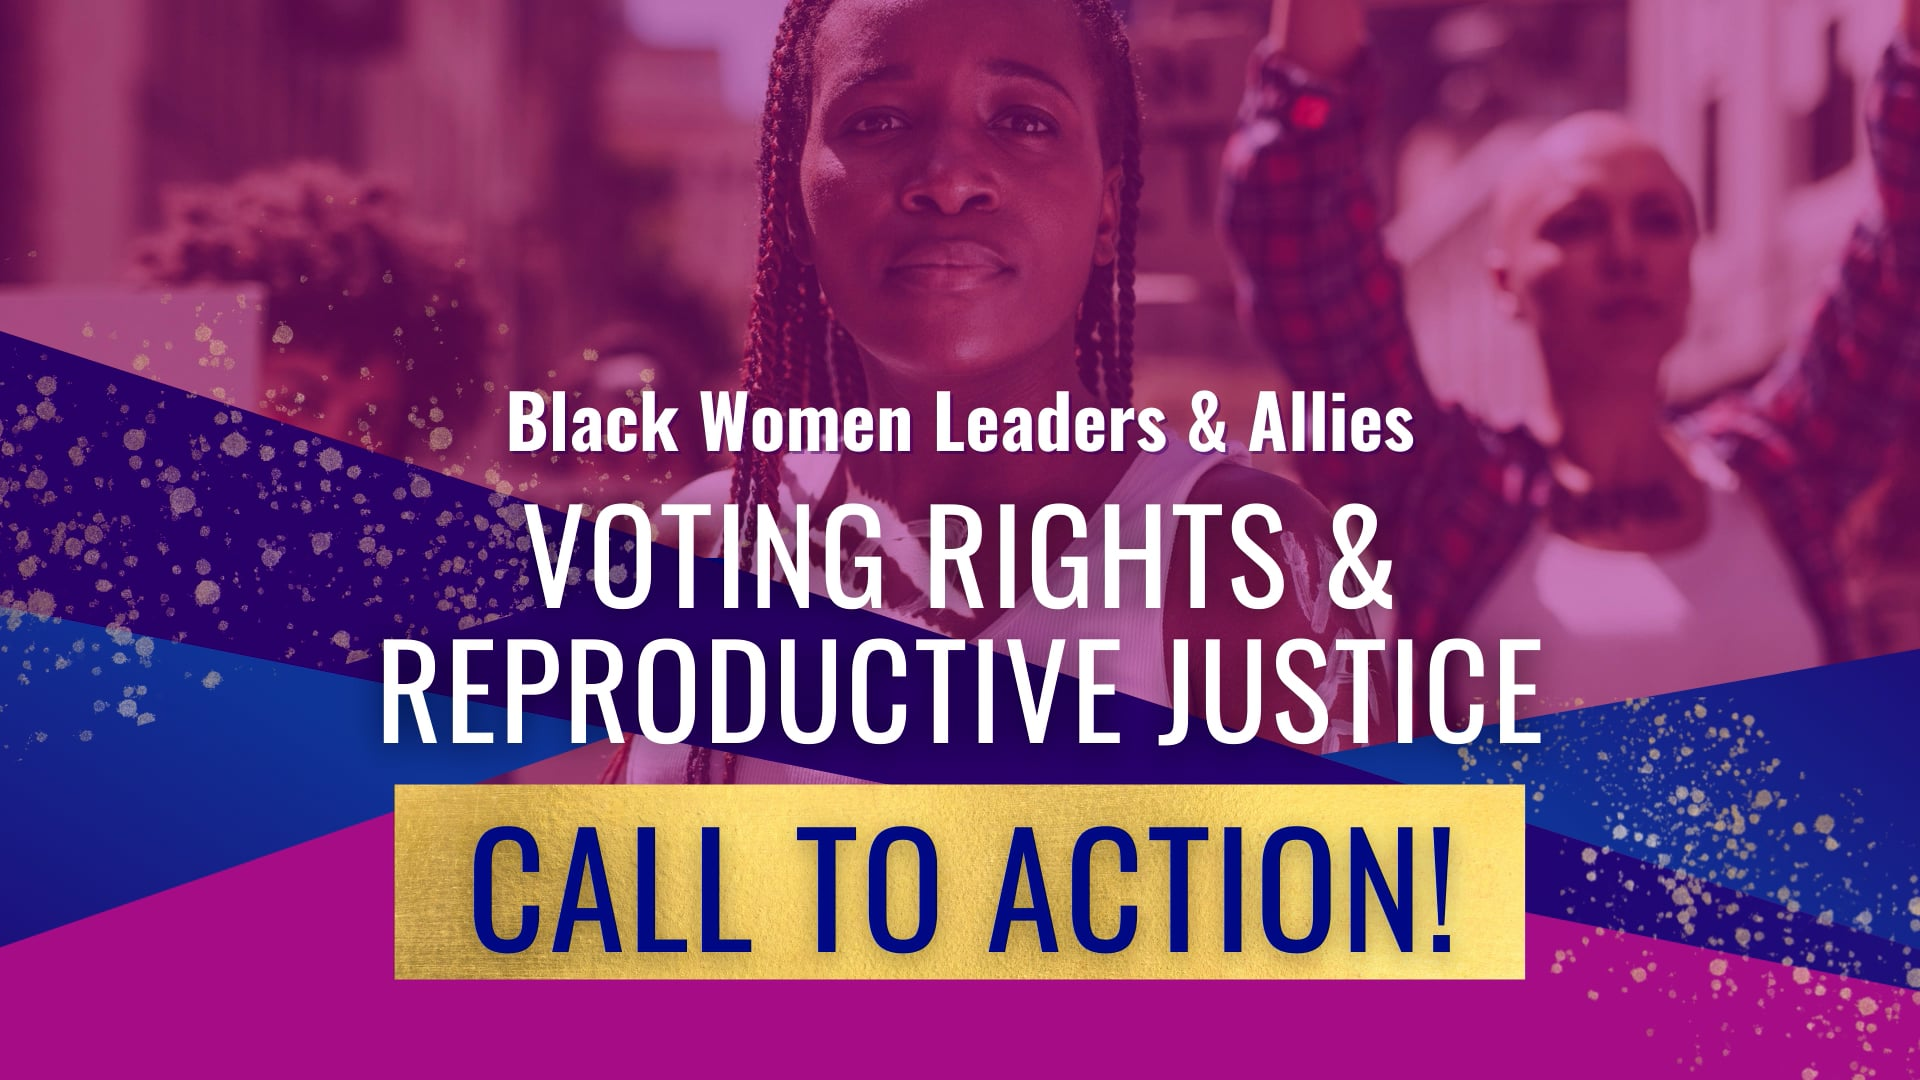 Black Women & Allies Take Action for Voting Rights and Reproductive Justice @ U. S. Supreme Court September 15, 2021